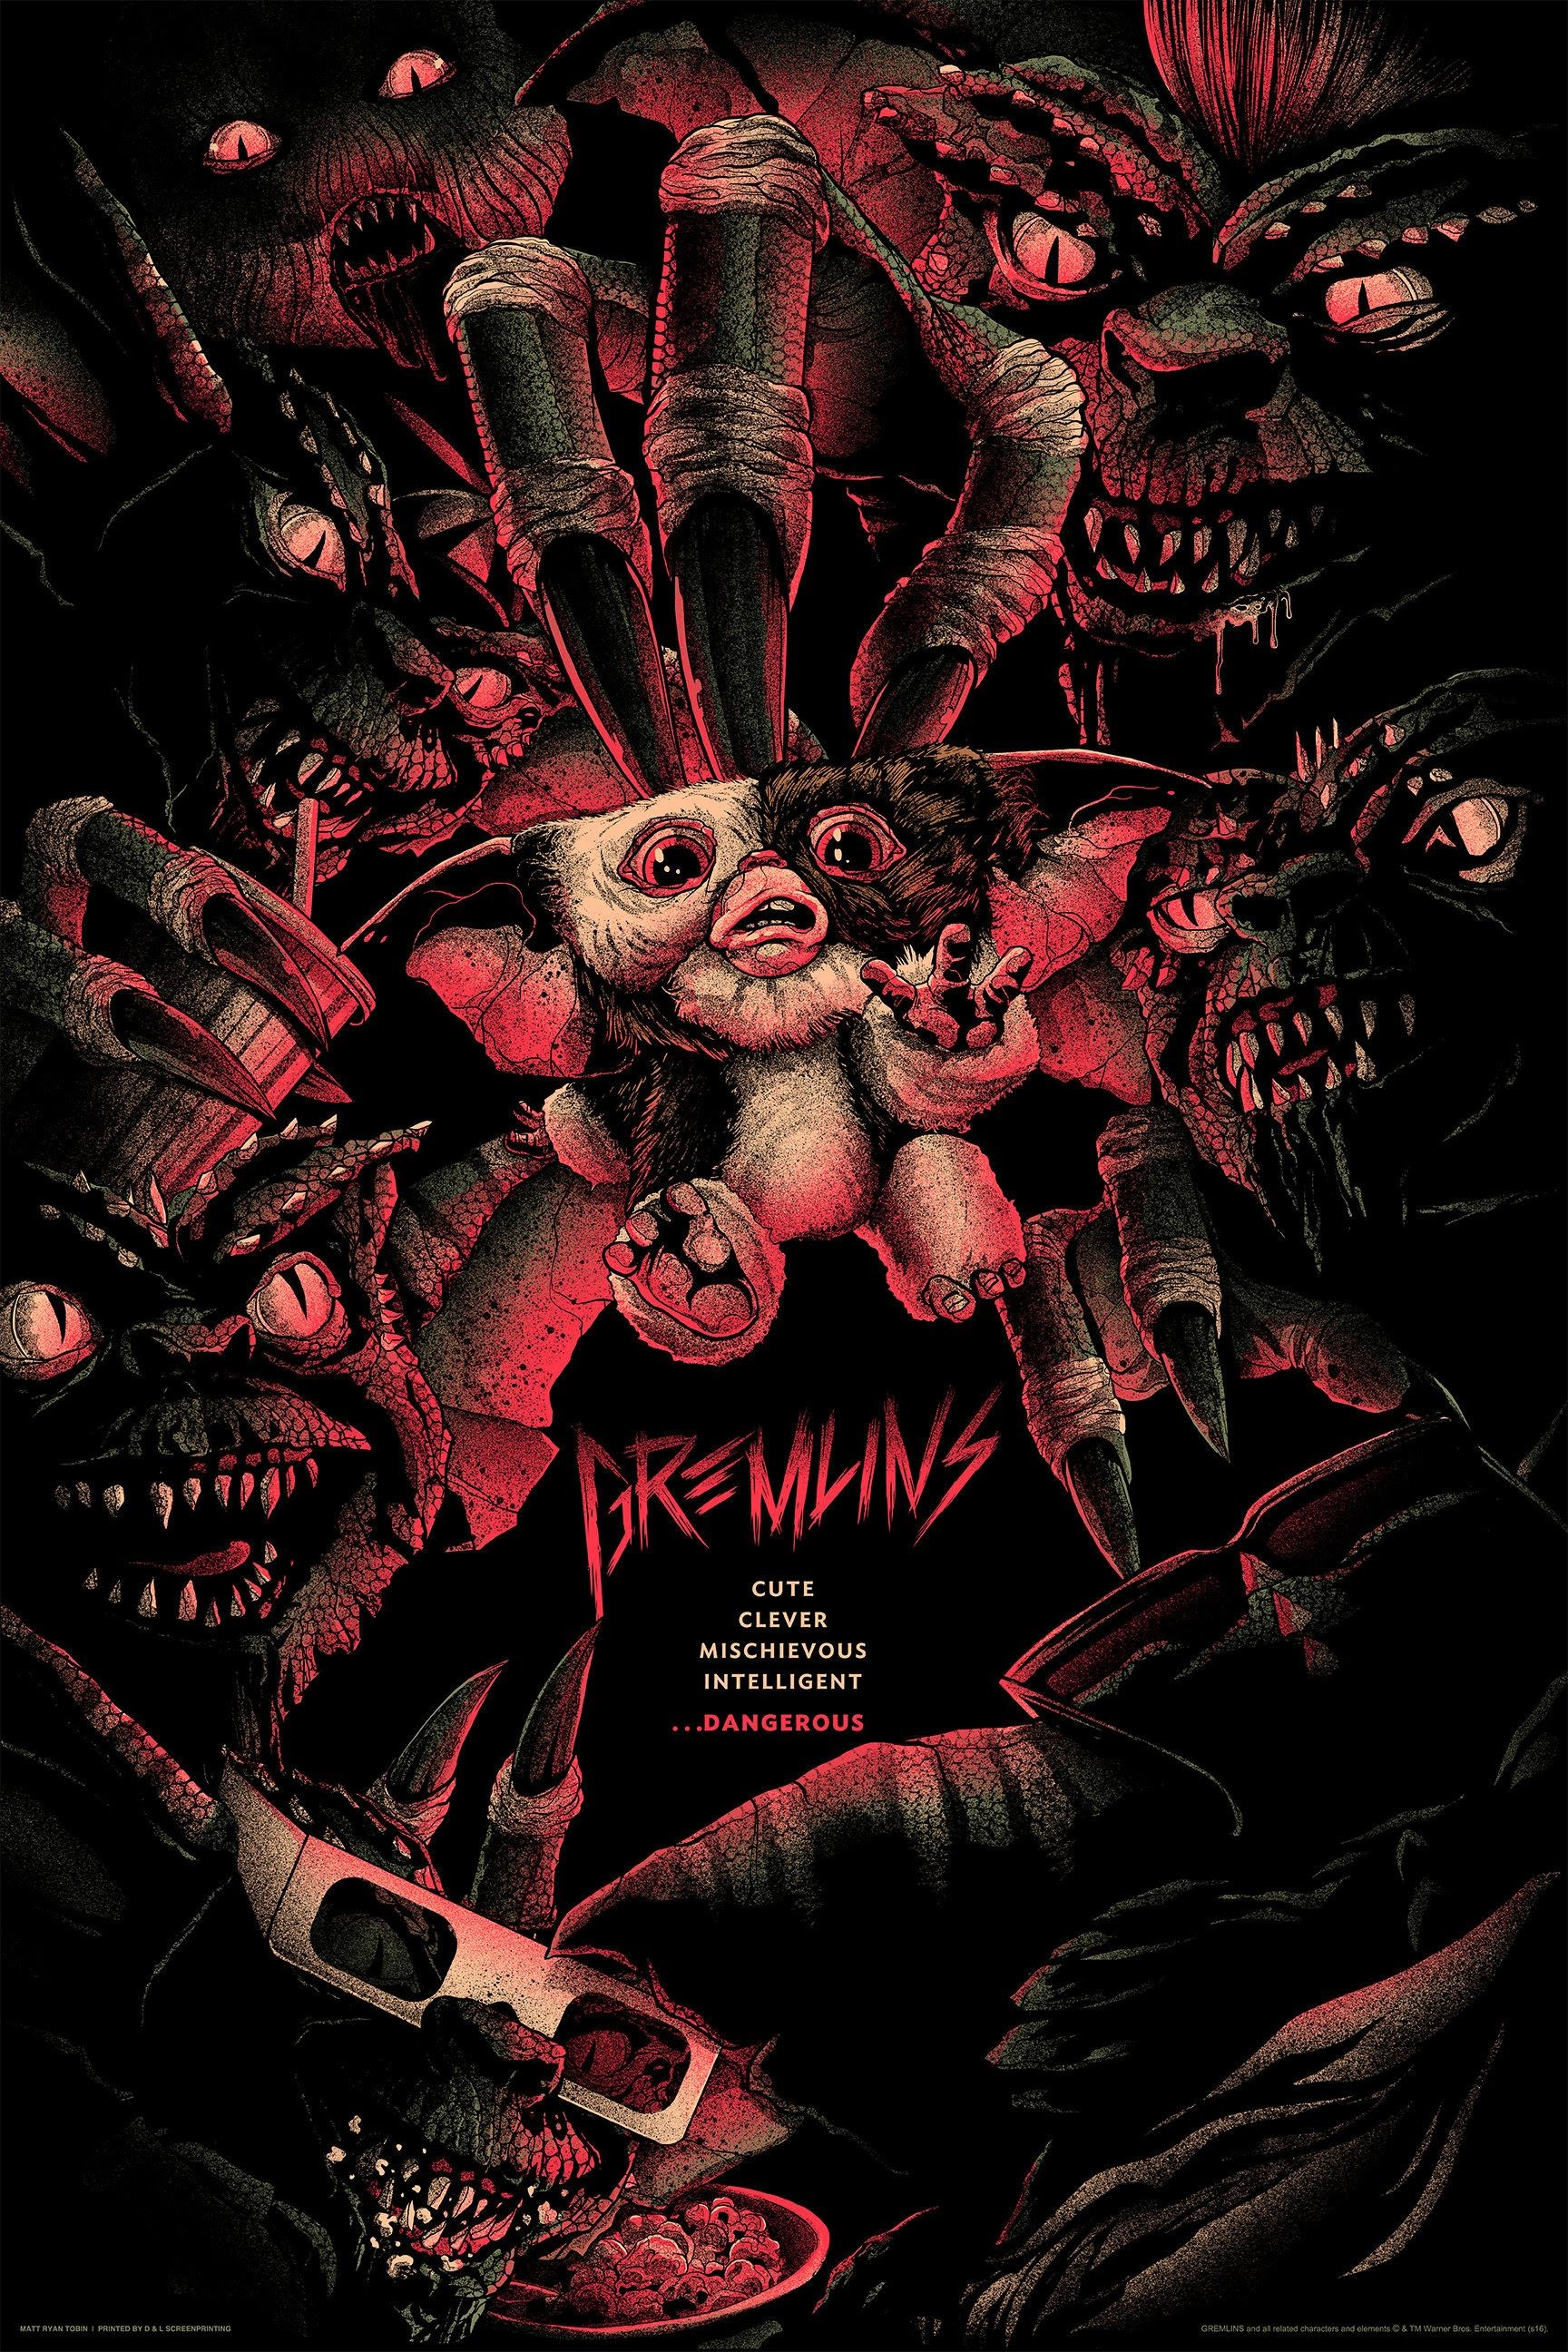 """Res: 1728x2592, Gremlins by Matt Ryan Tobin. 24""""x36"""" screen print. Hand numbered. Edition  of 275. Printed by D&L Screenprinting. Expected to ship January 2017. $45"""